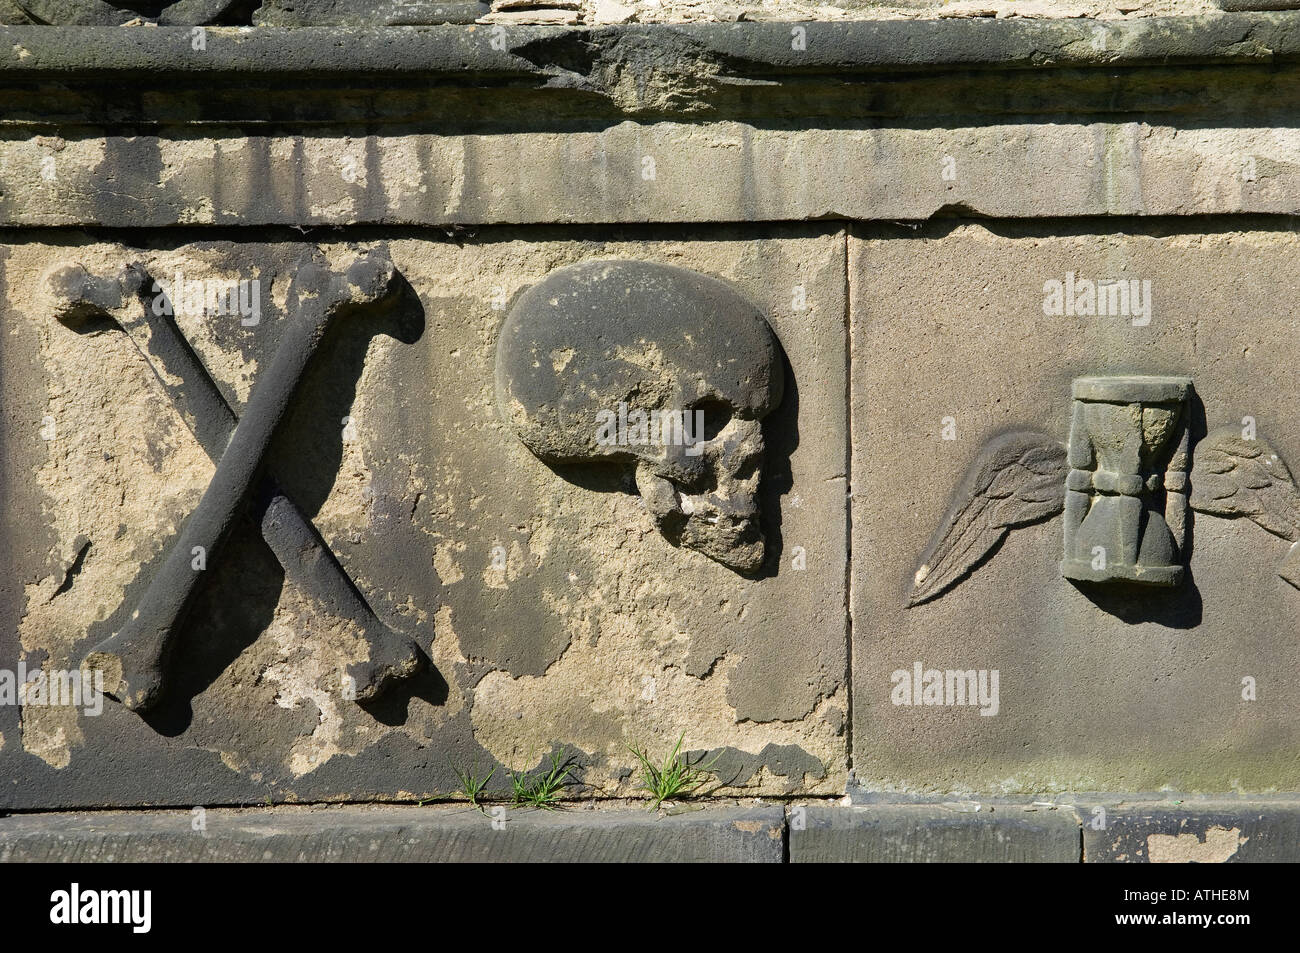 Old Calton cemetery, Calton Hill, Edinburgh, Scotland dates from 1718. Tomb grave stone detail. Skull, crossbones, - Stock Image